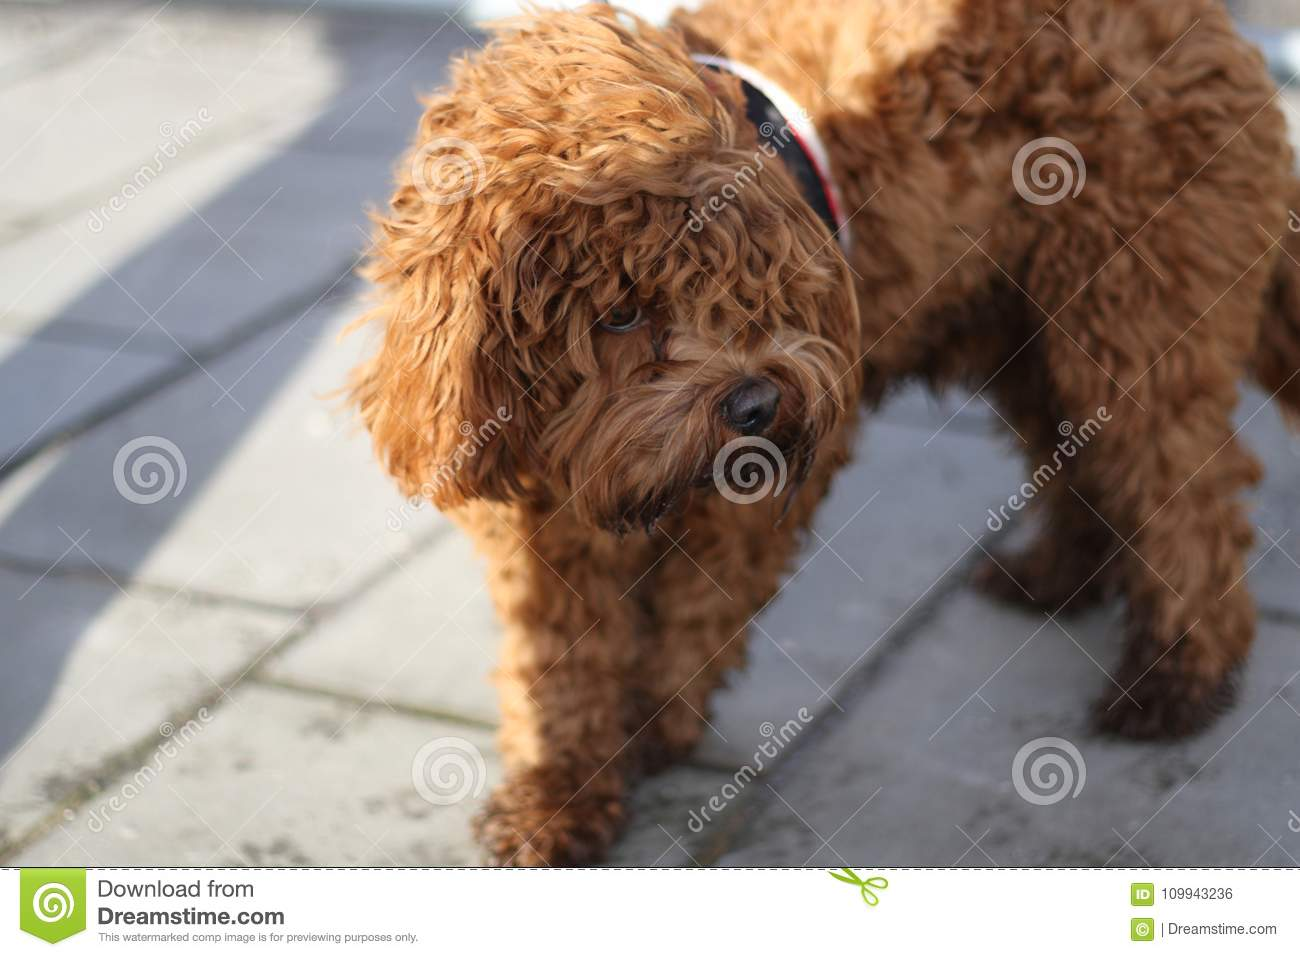 Cockapoo Poodle Dog Teddy Bear Stock Photo Image Of Breed Domestic 109943236